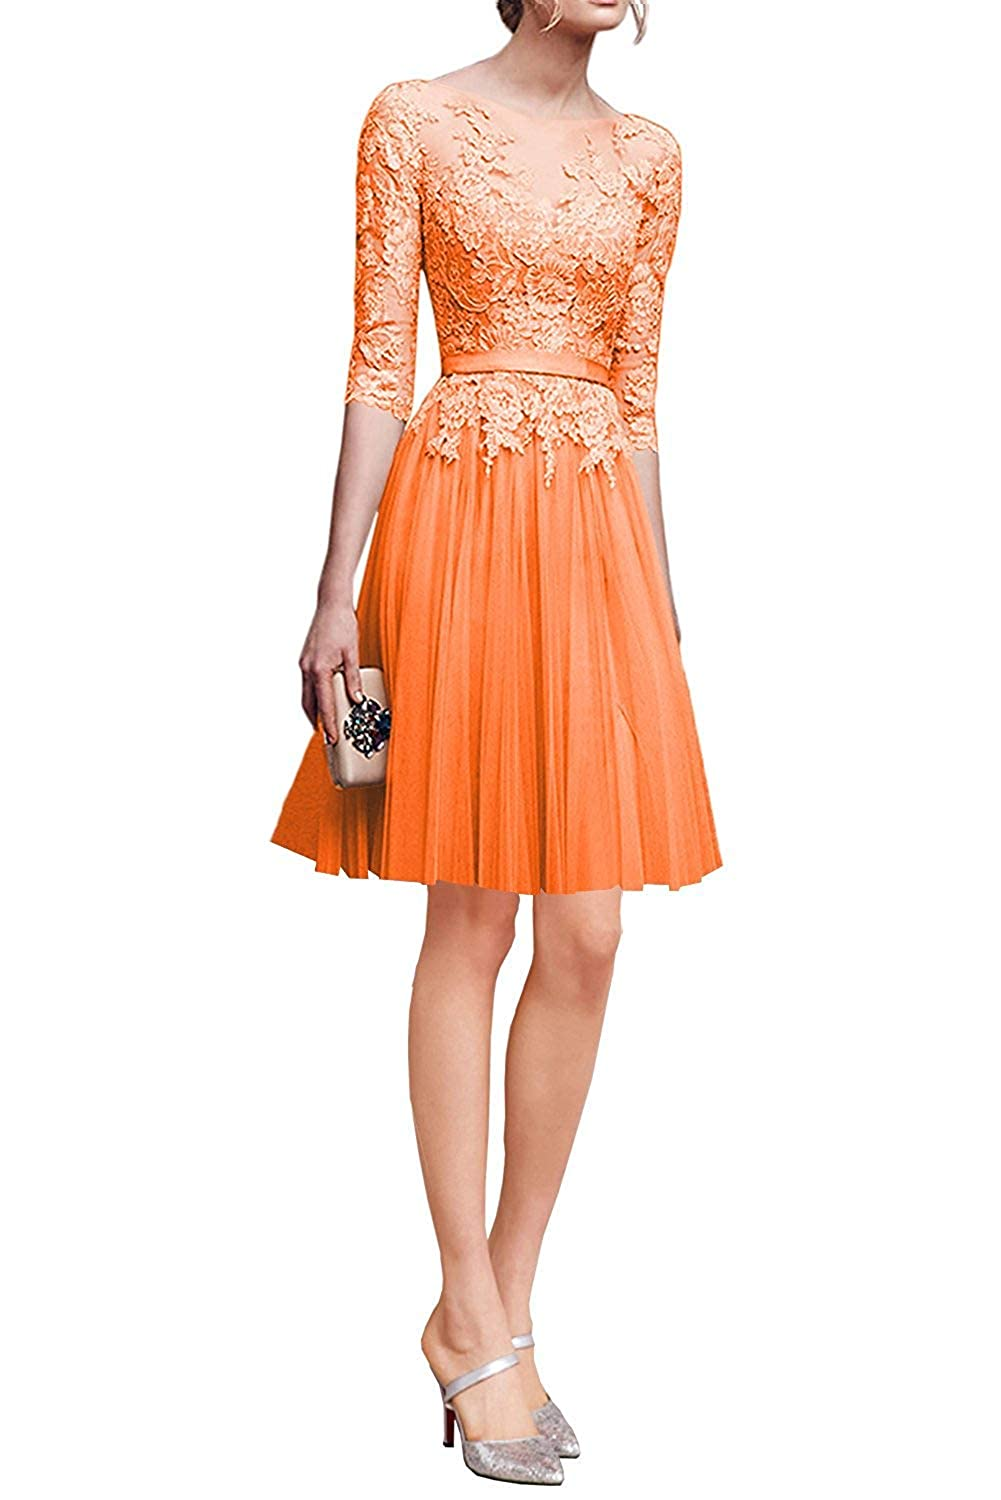 orange ZLQQ Woman's Half Sleeves Tulle Short Bridesmaid Dresses Lace Tea Length Evening Gowns